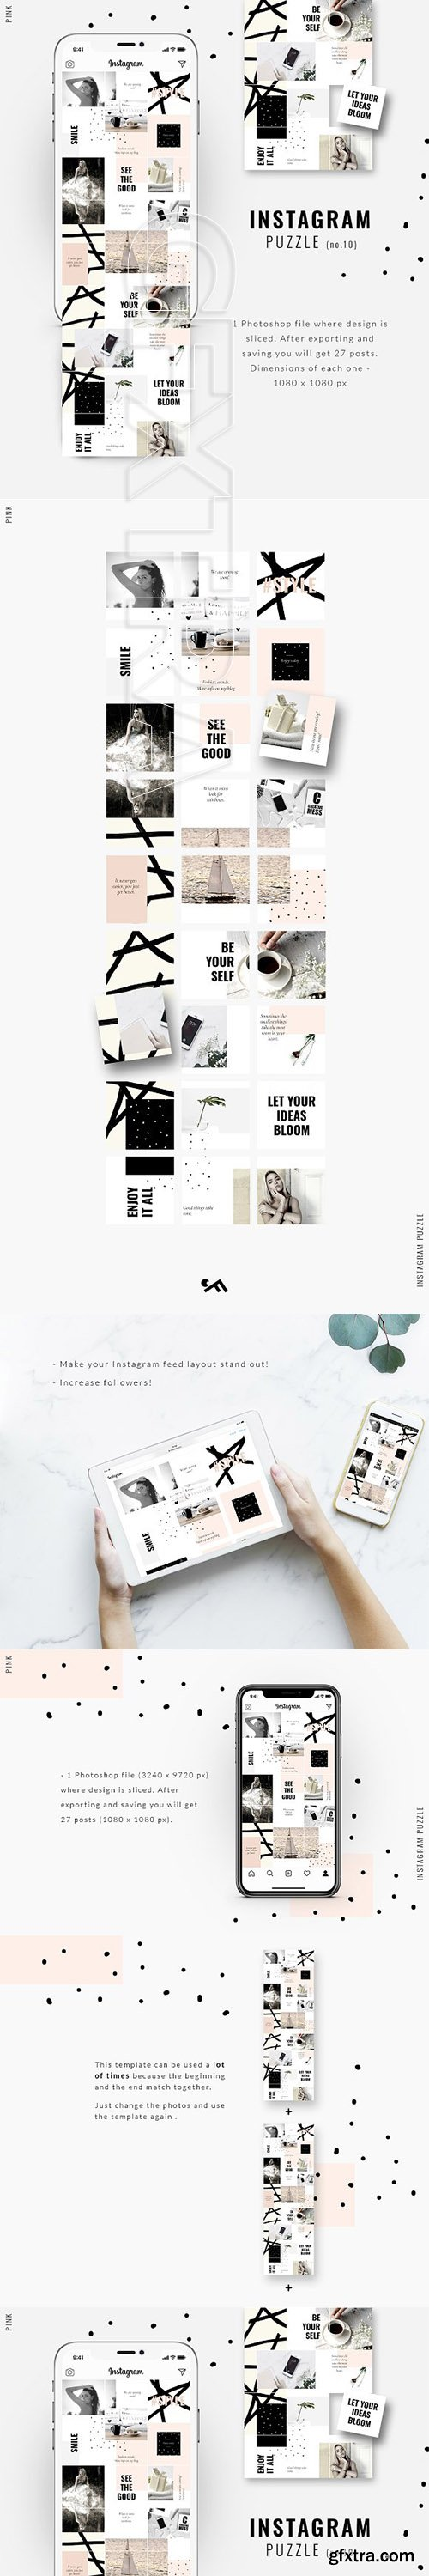 CreativeMarket - Instagram PUZZLE template - Pink 3247012